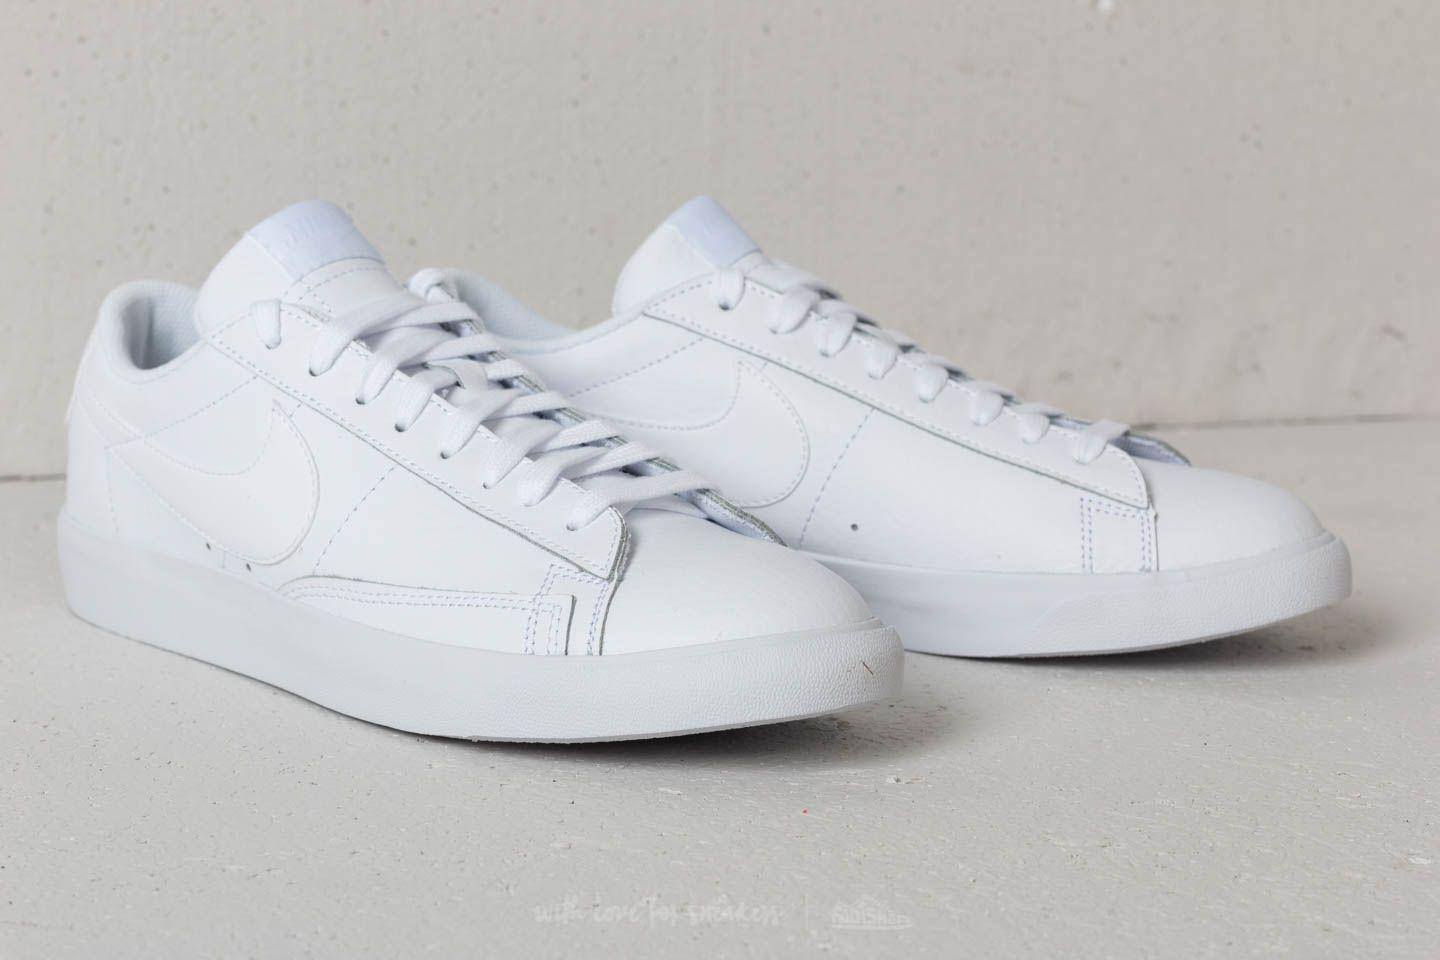 new arrivals 271d7 42121 Nike Blazer Low Leather White  White-white in White - Lyst